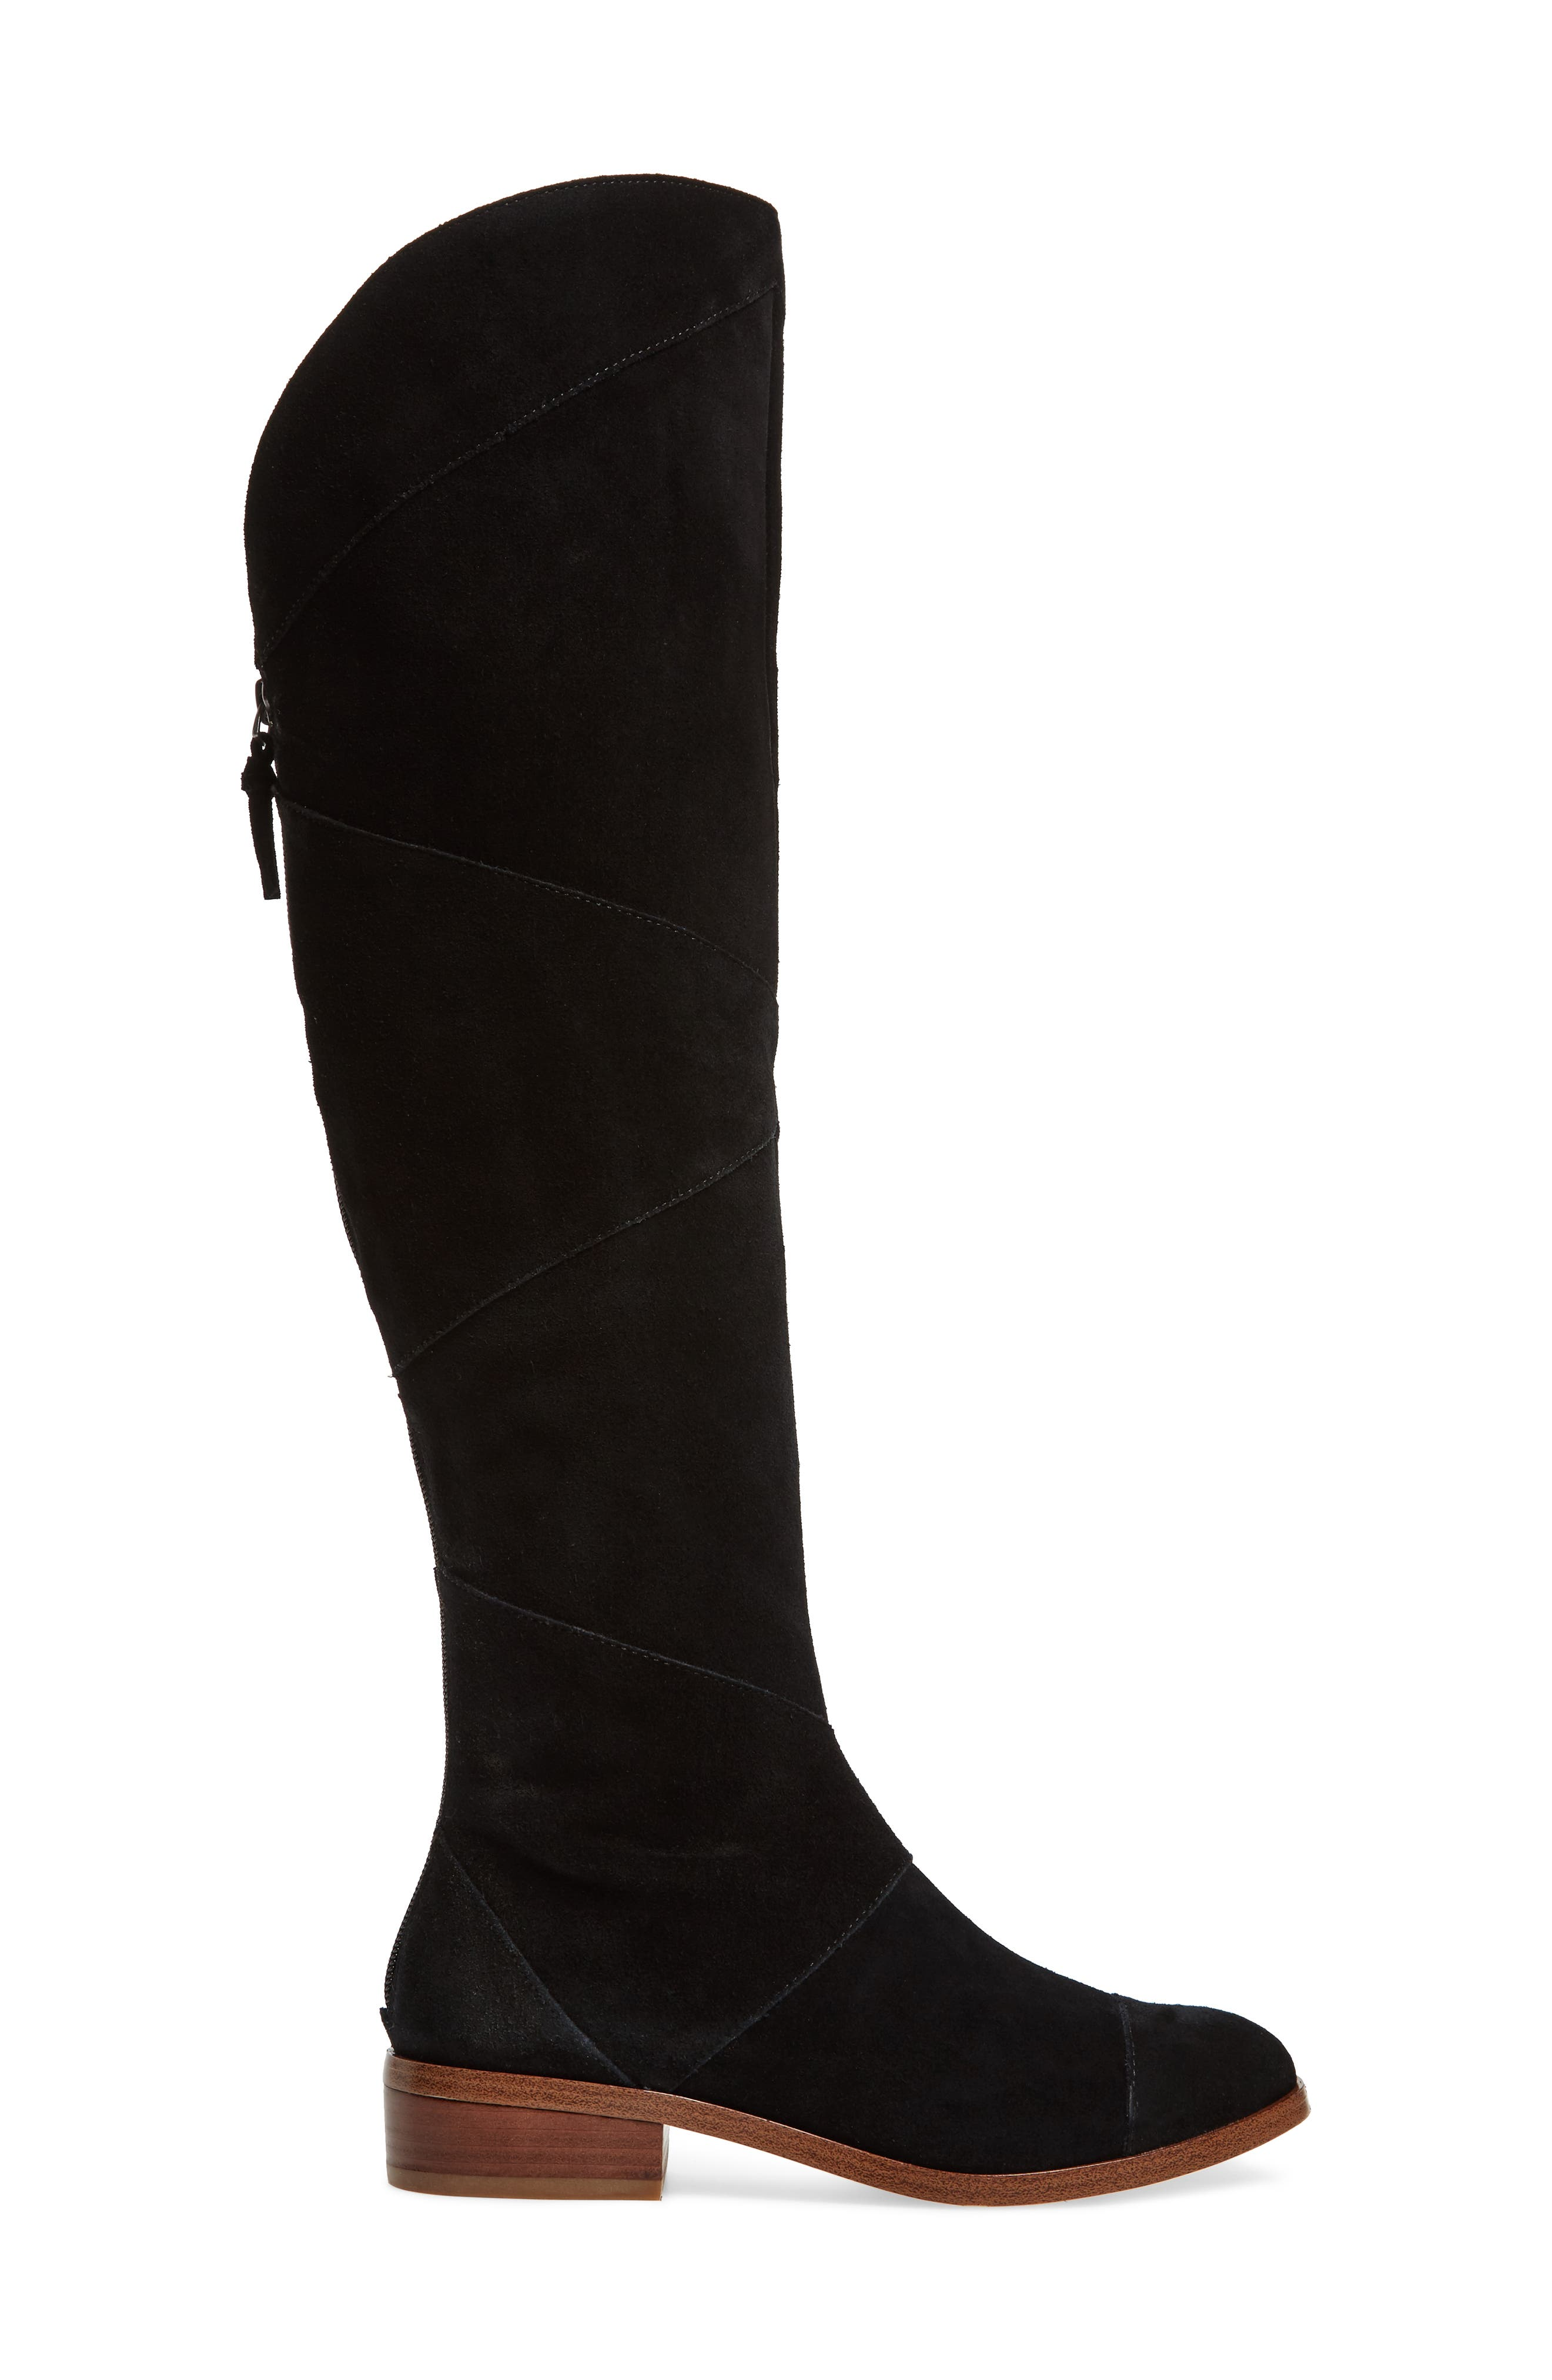 SOLE SOCIETY, Tiff Over the Knee Boot, Alternate thumbnail 3, color, BLACK